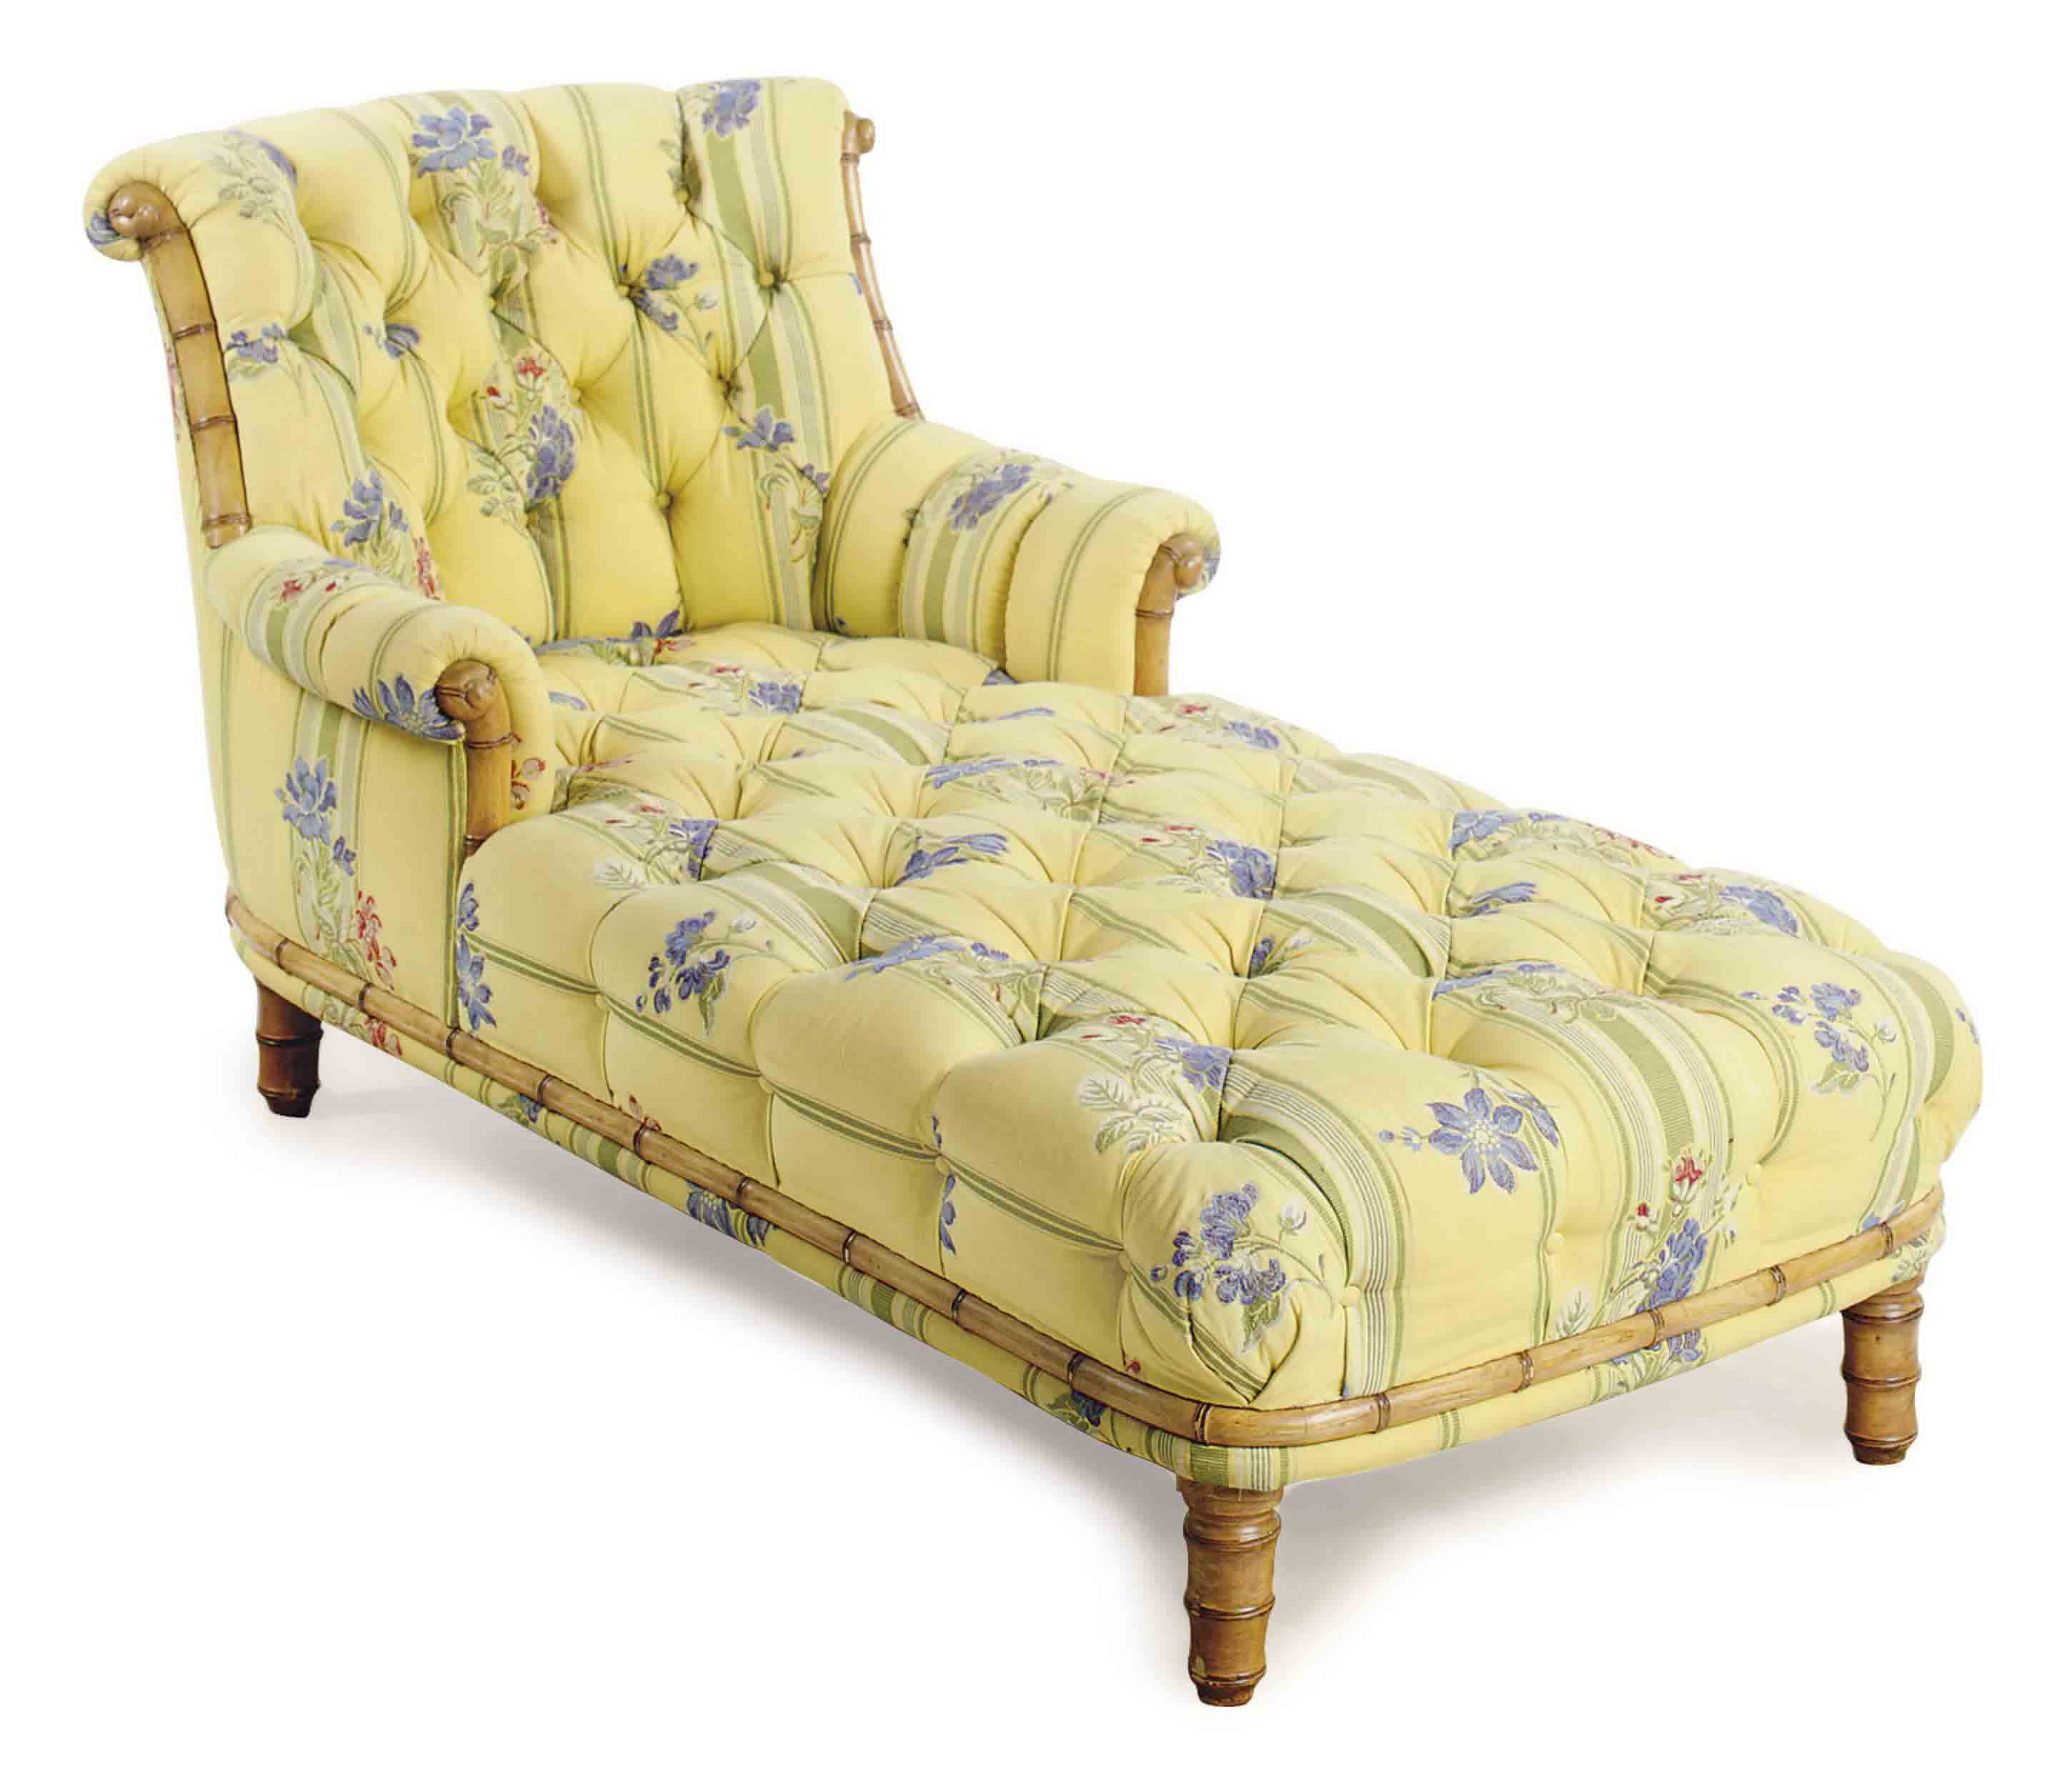 TWO BUTTON-TUFTED UPHOLSTERED CHAISE LONGUES,